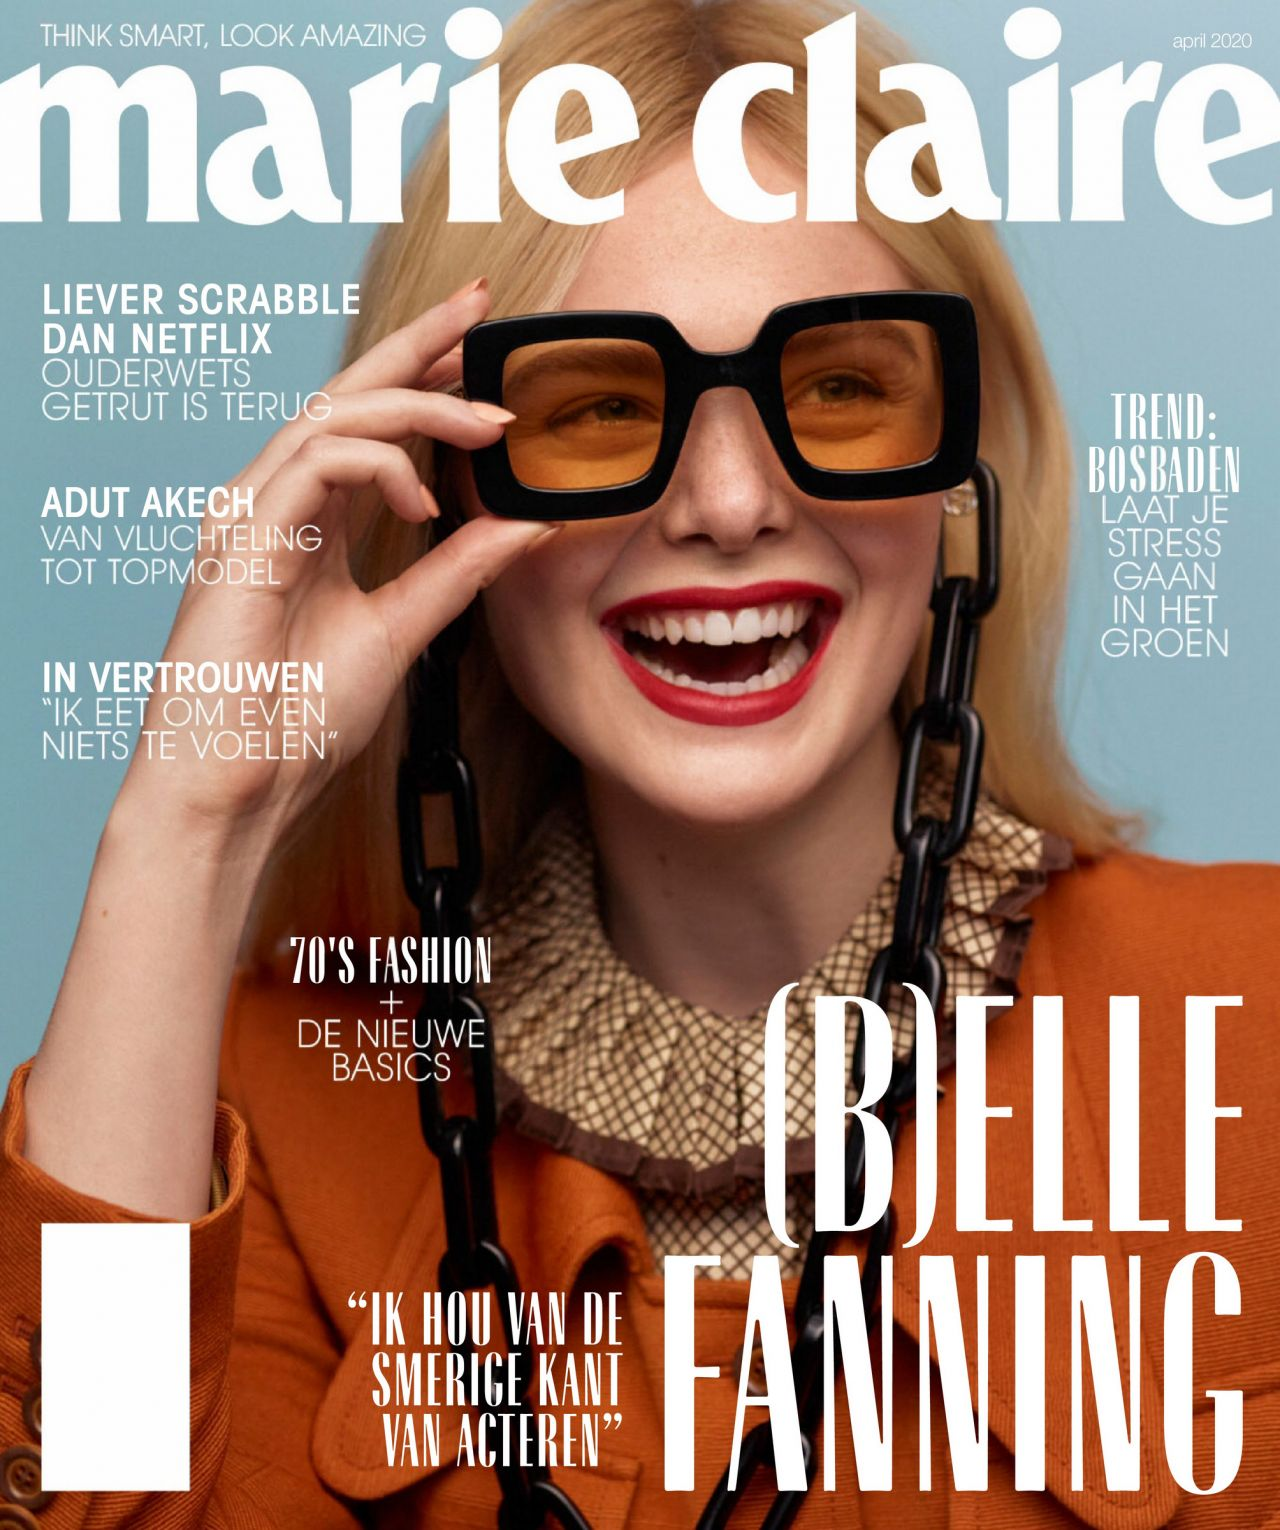 elle-fanning-covers-marie-claire-netherlands-april-2020-issue